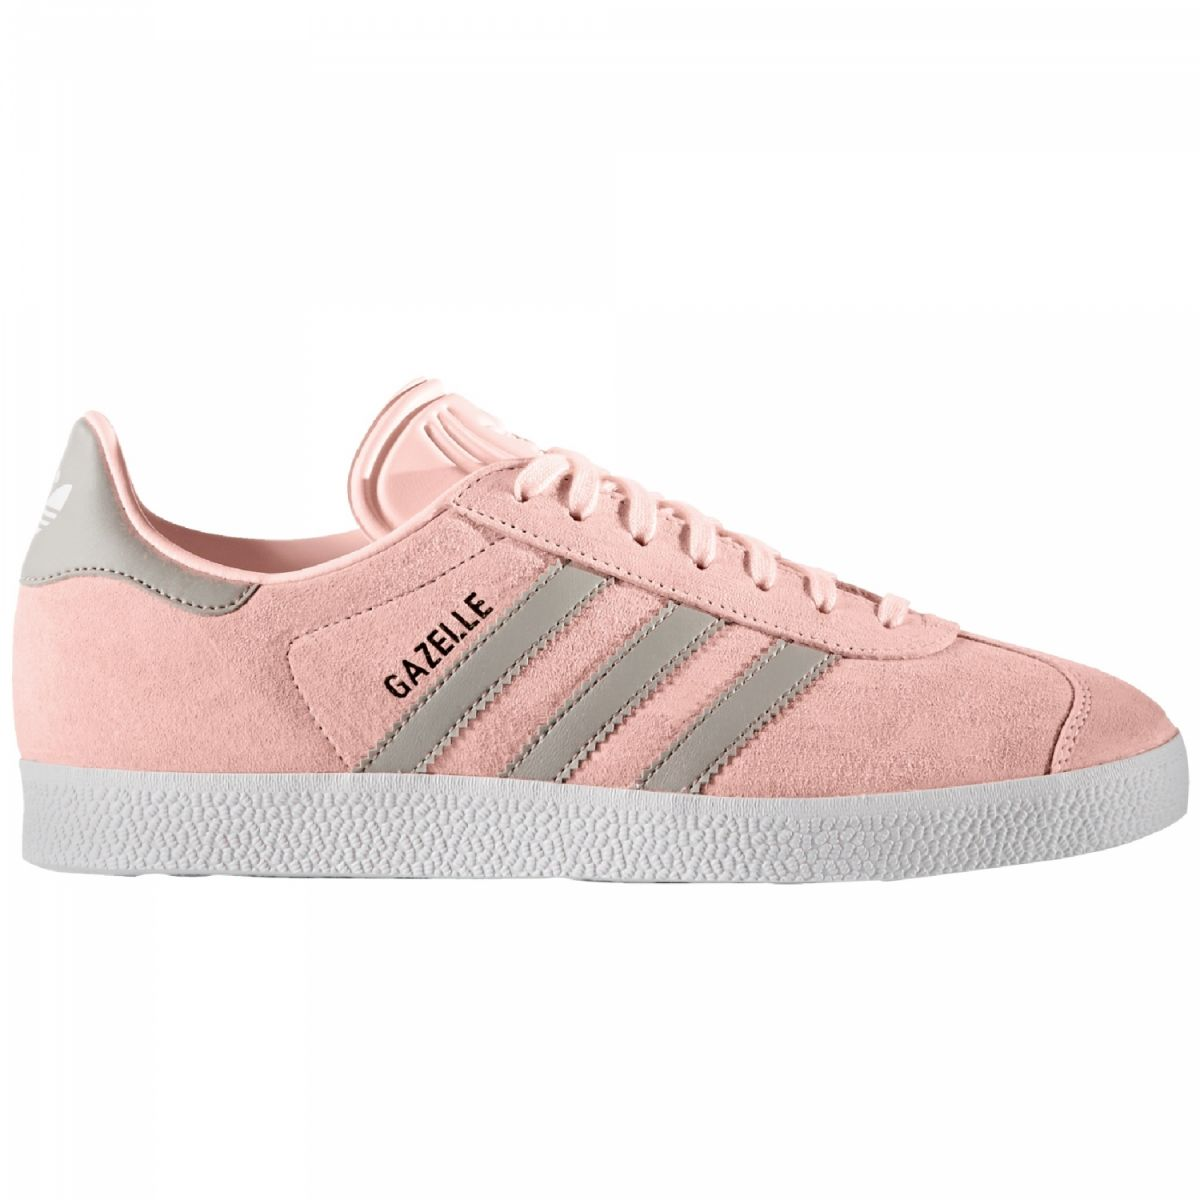 adidas originals gazelle sneaker damen schuhe coral ba7656 sport klingenmaier. Black Bedroom Furniture Sets. Home Design Ideas